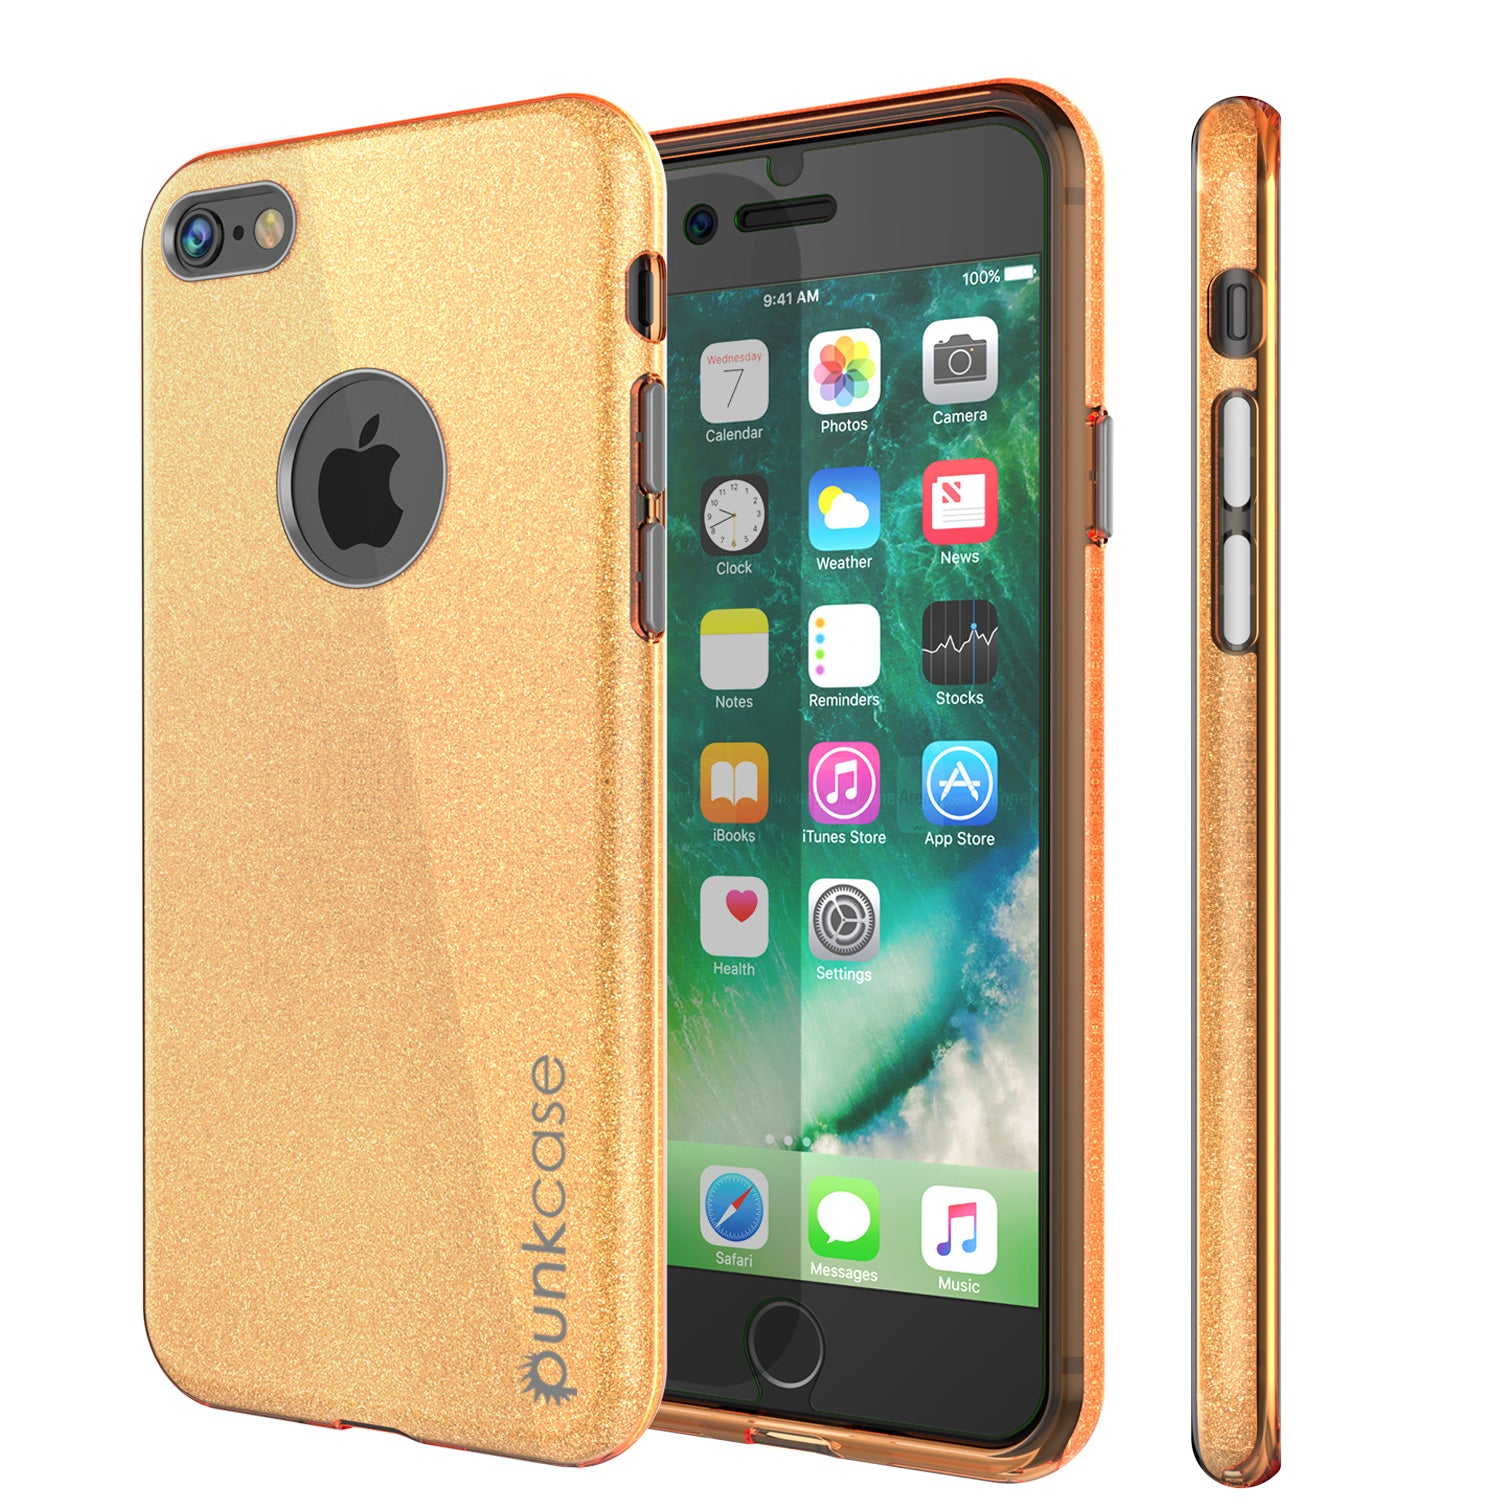 iPhone 8 Case, Punkcase Galactic 2.0 Series Ultra Slim Protective Armor TPU Cover [Gold]